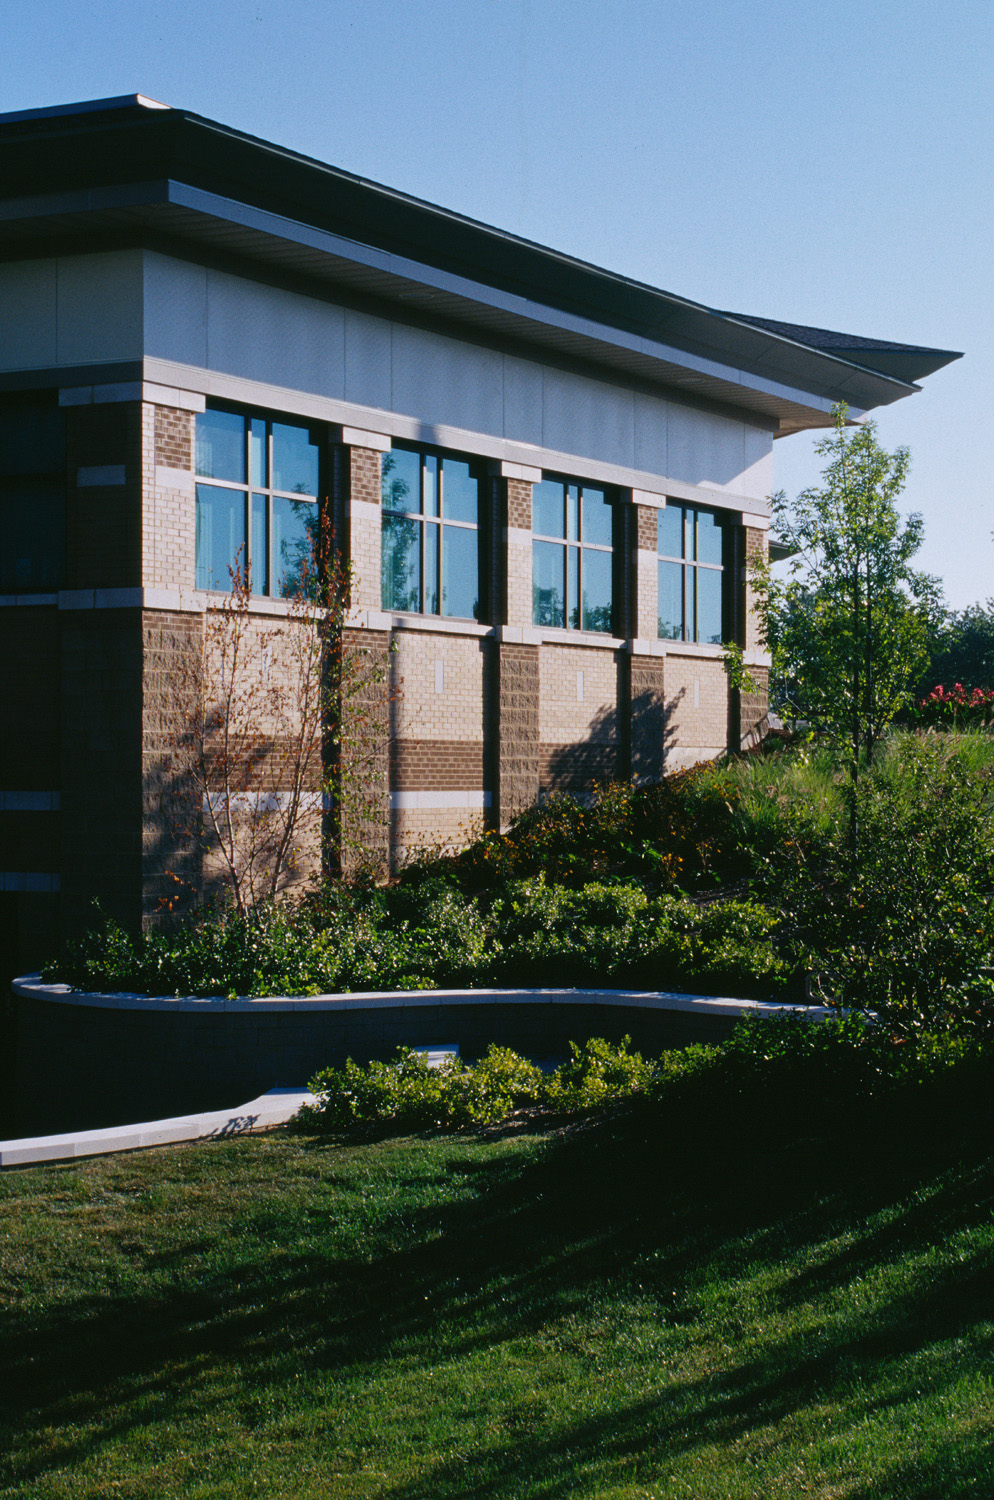 2000-046-37 Downers Grove Rec Center ext vertical back of building.jpg